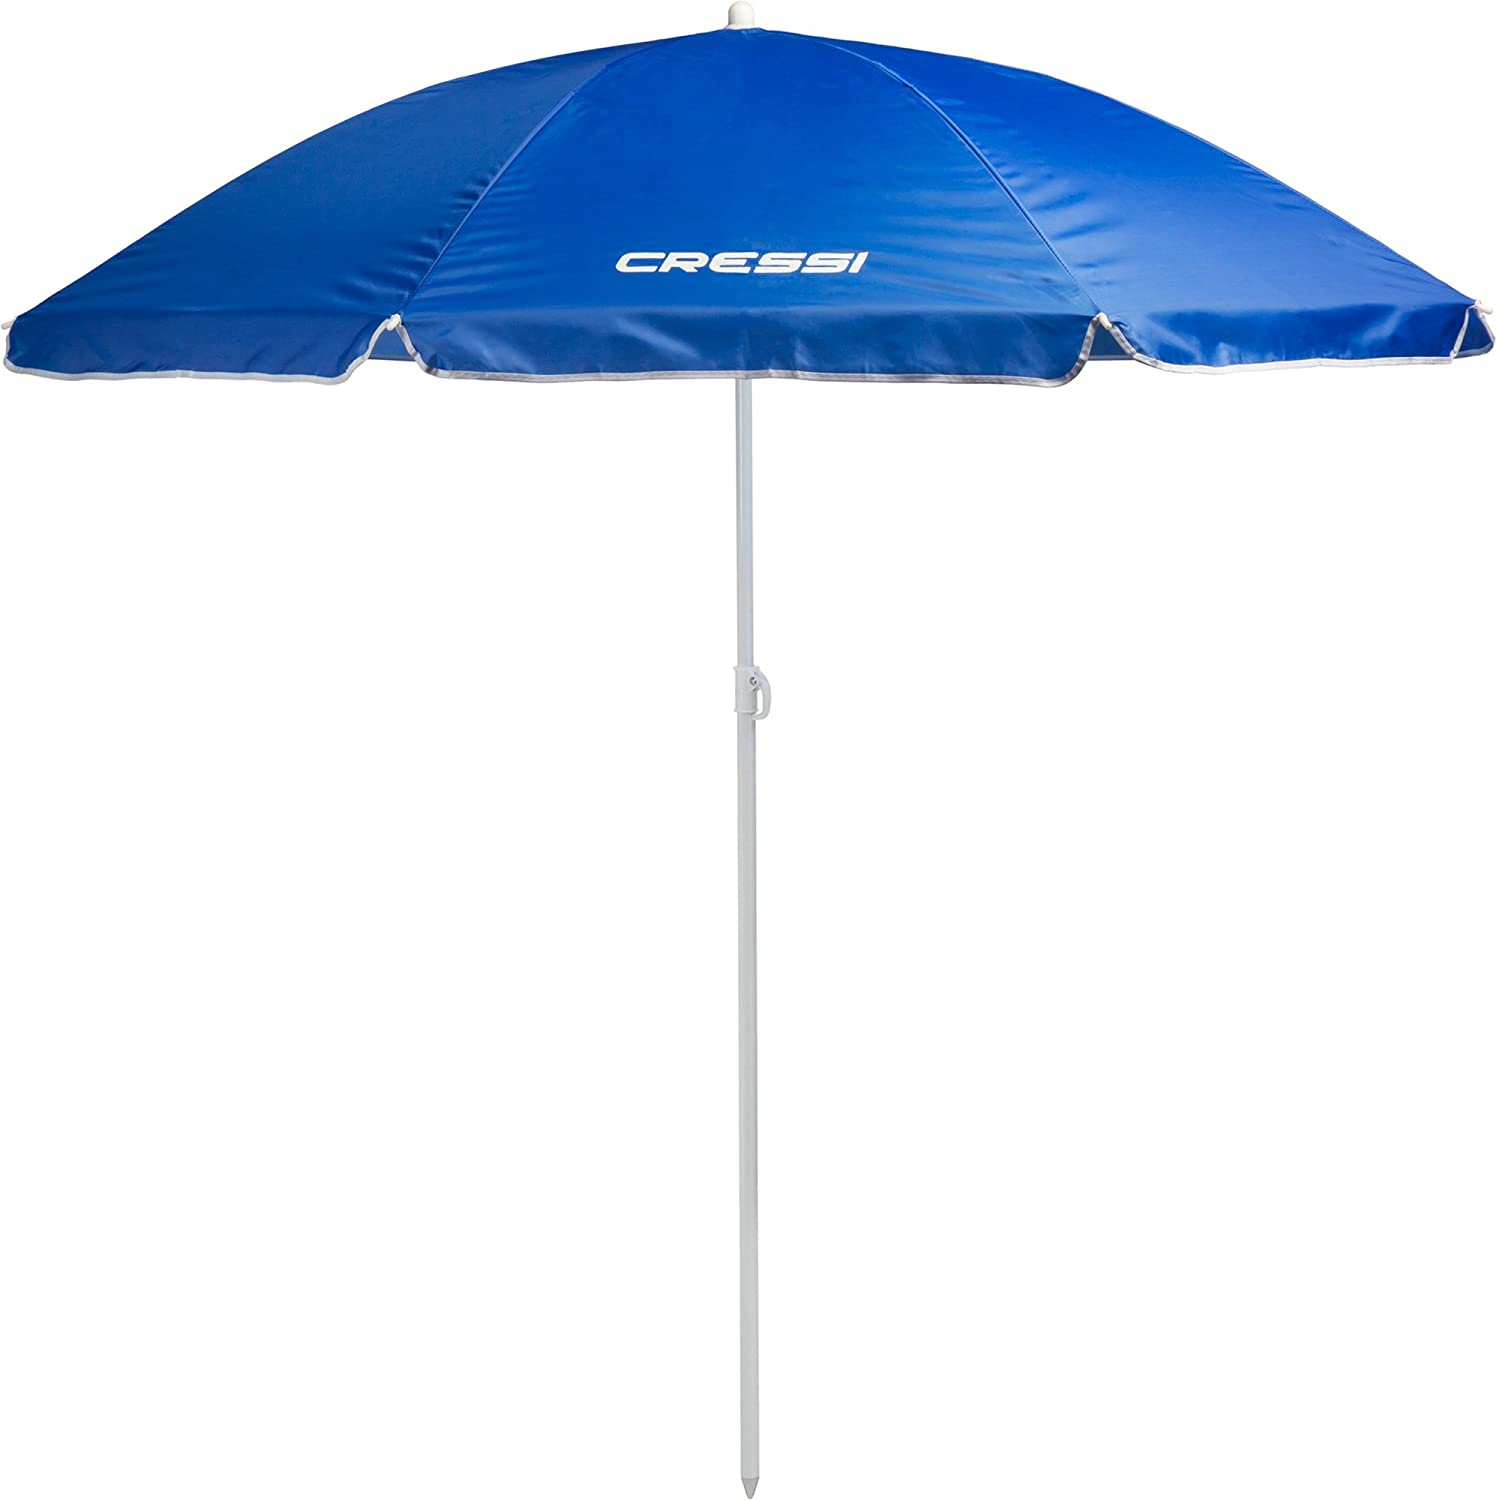 Cressi Premium Beach Umbrella Portable